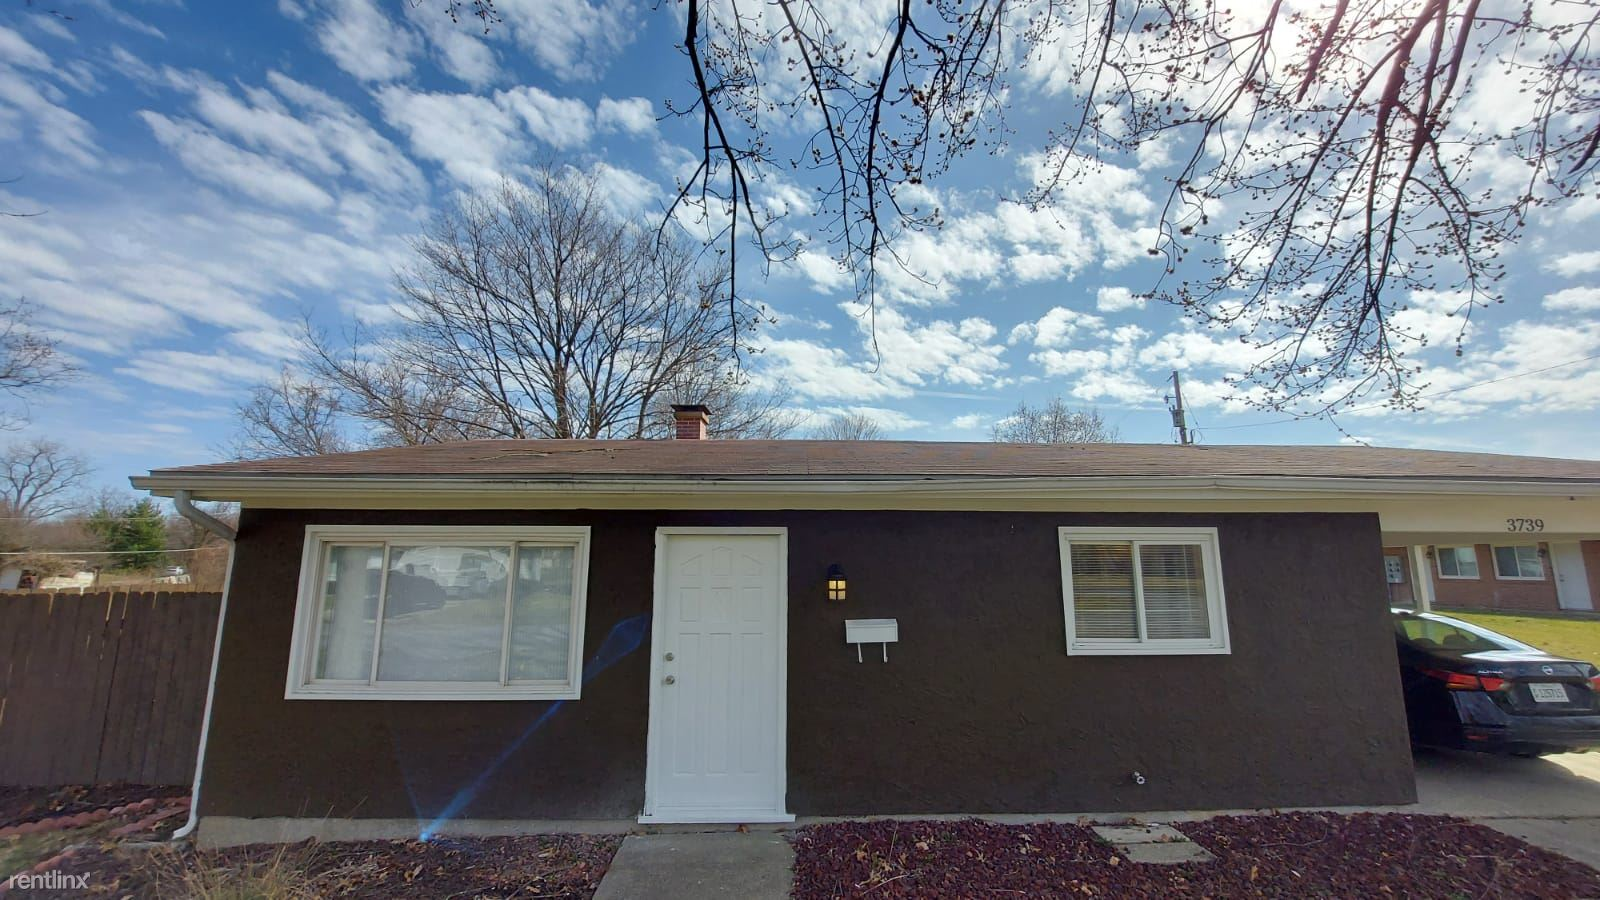 3739 Maywood Ave, Fort Wayne, IN - $899 USD/ month